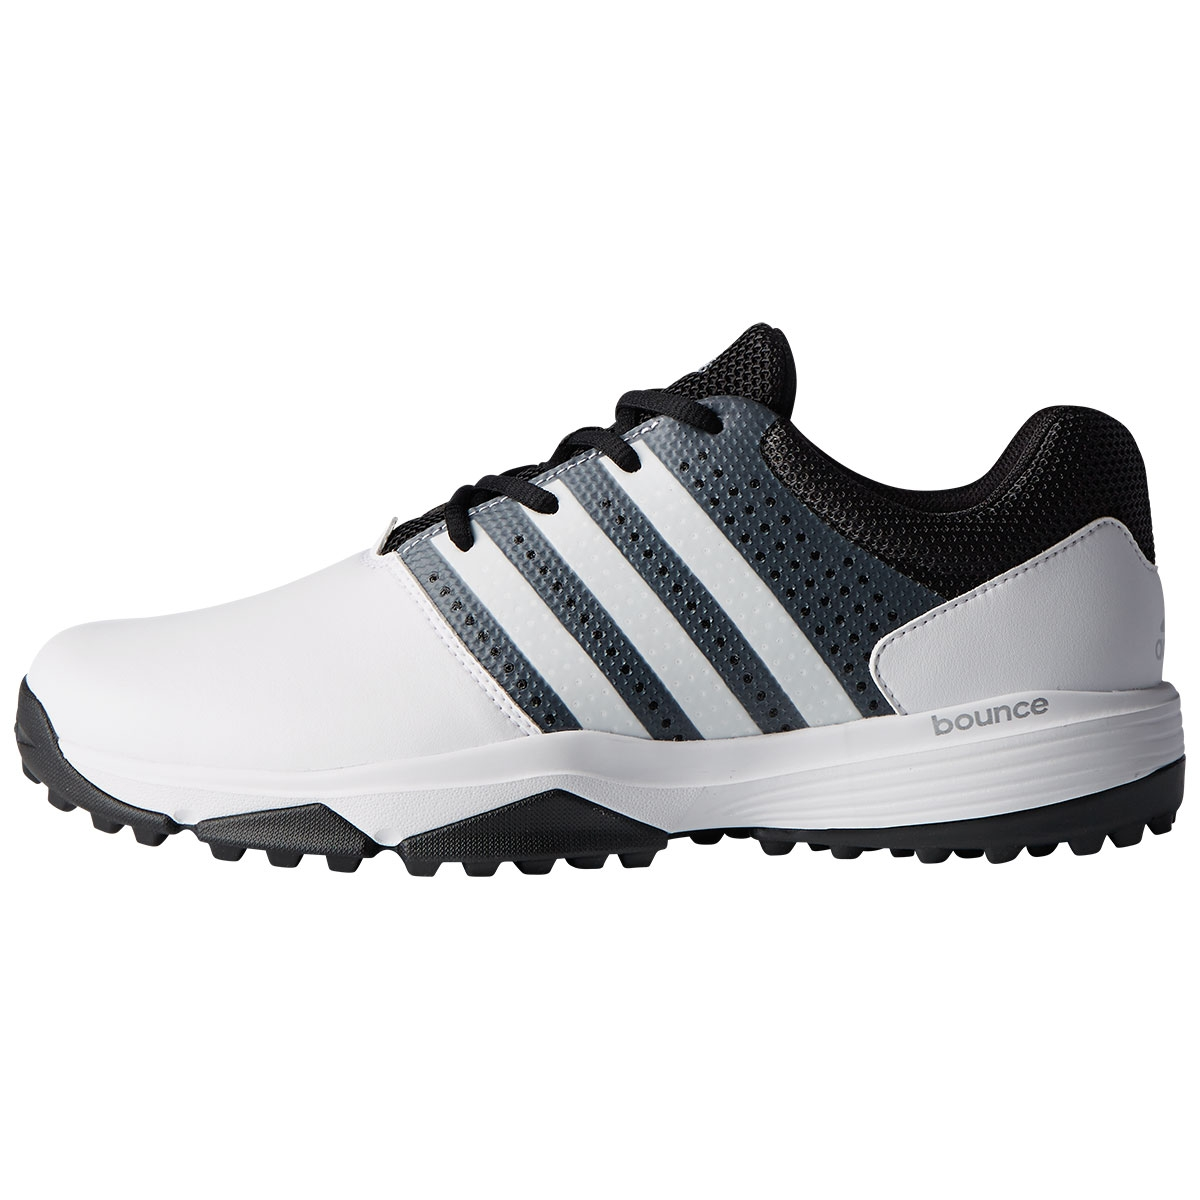 Adidas Mens 360 Traxion Spikeless Golf Shoe - White